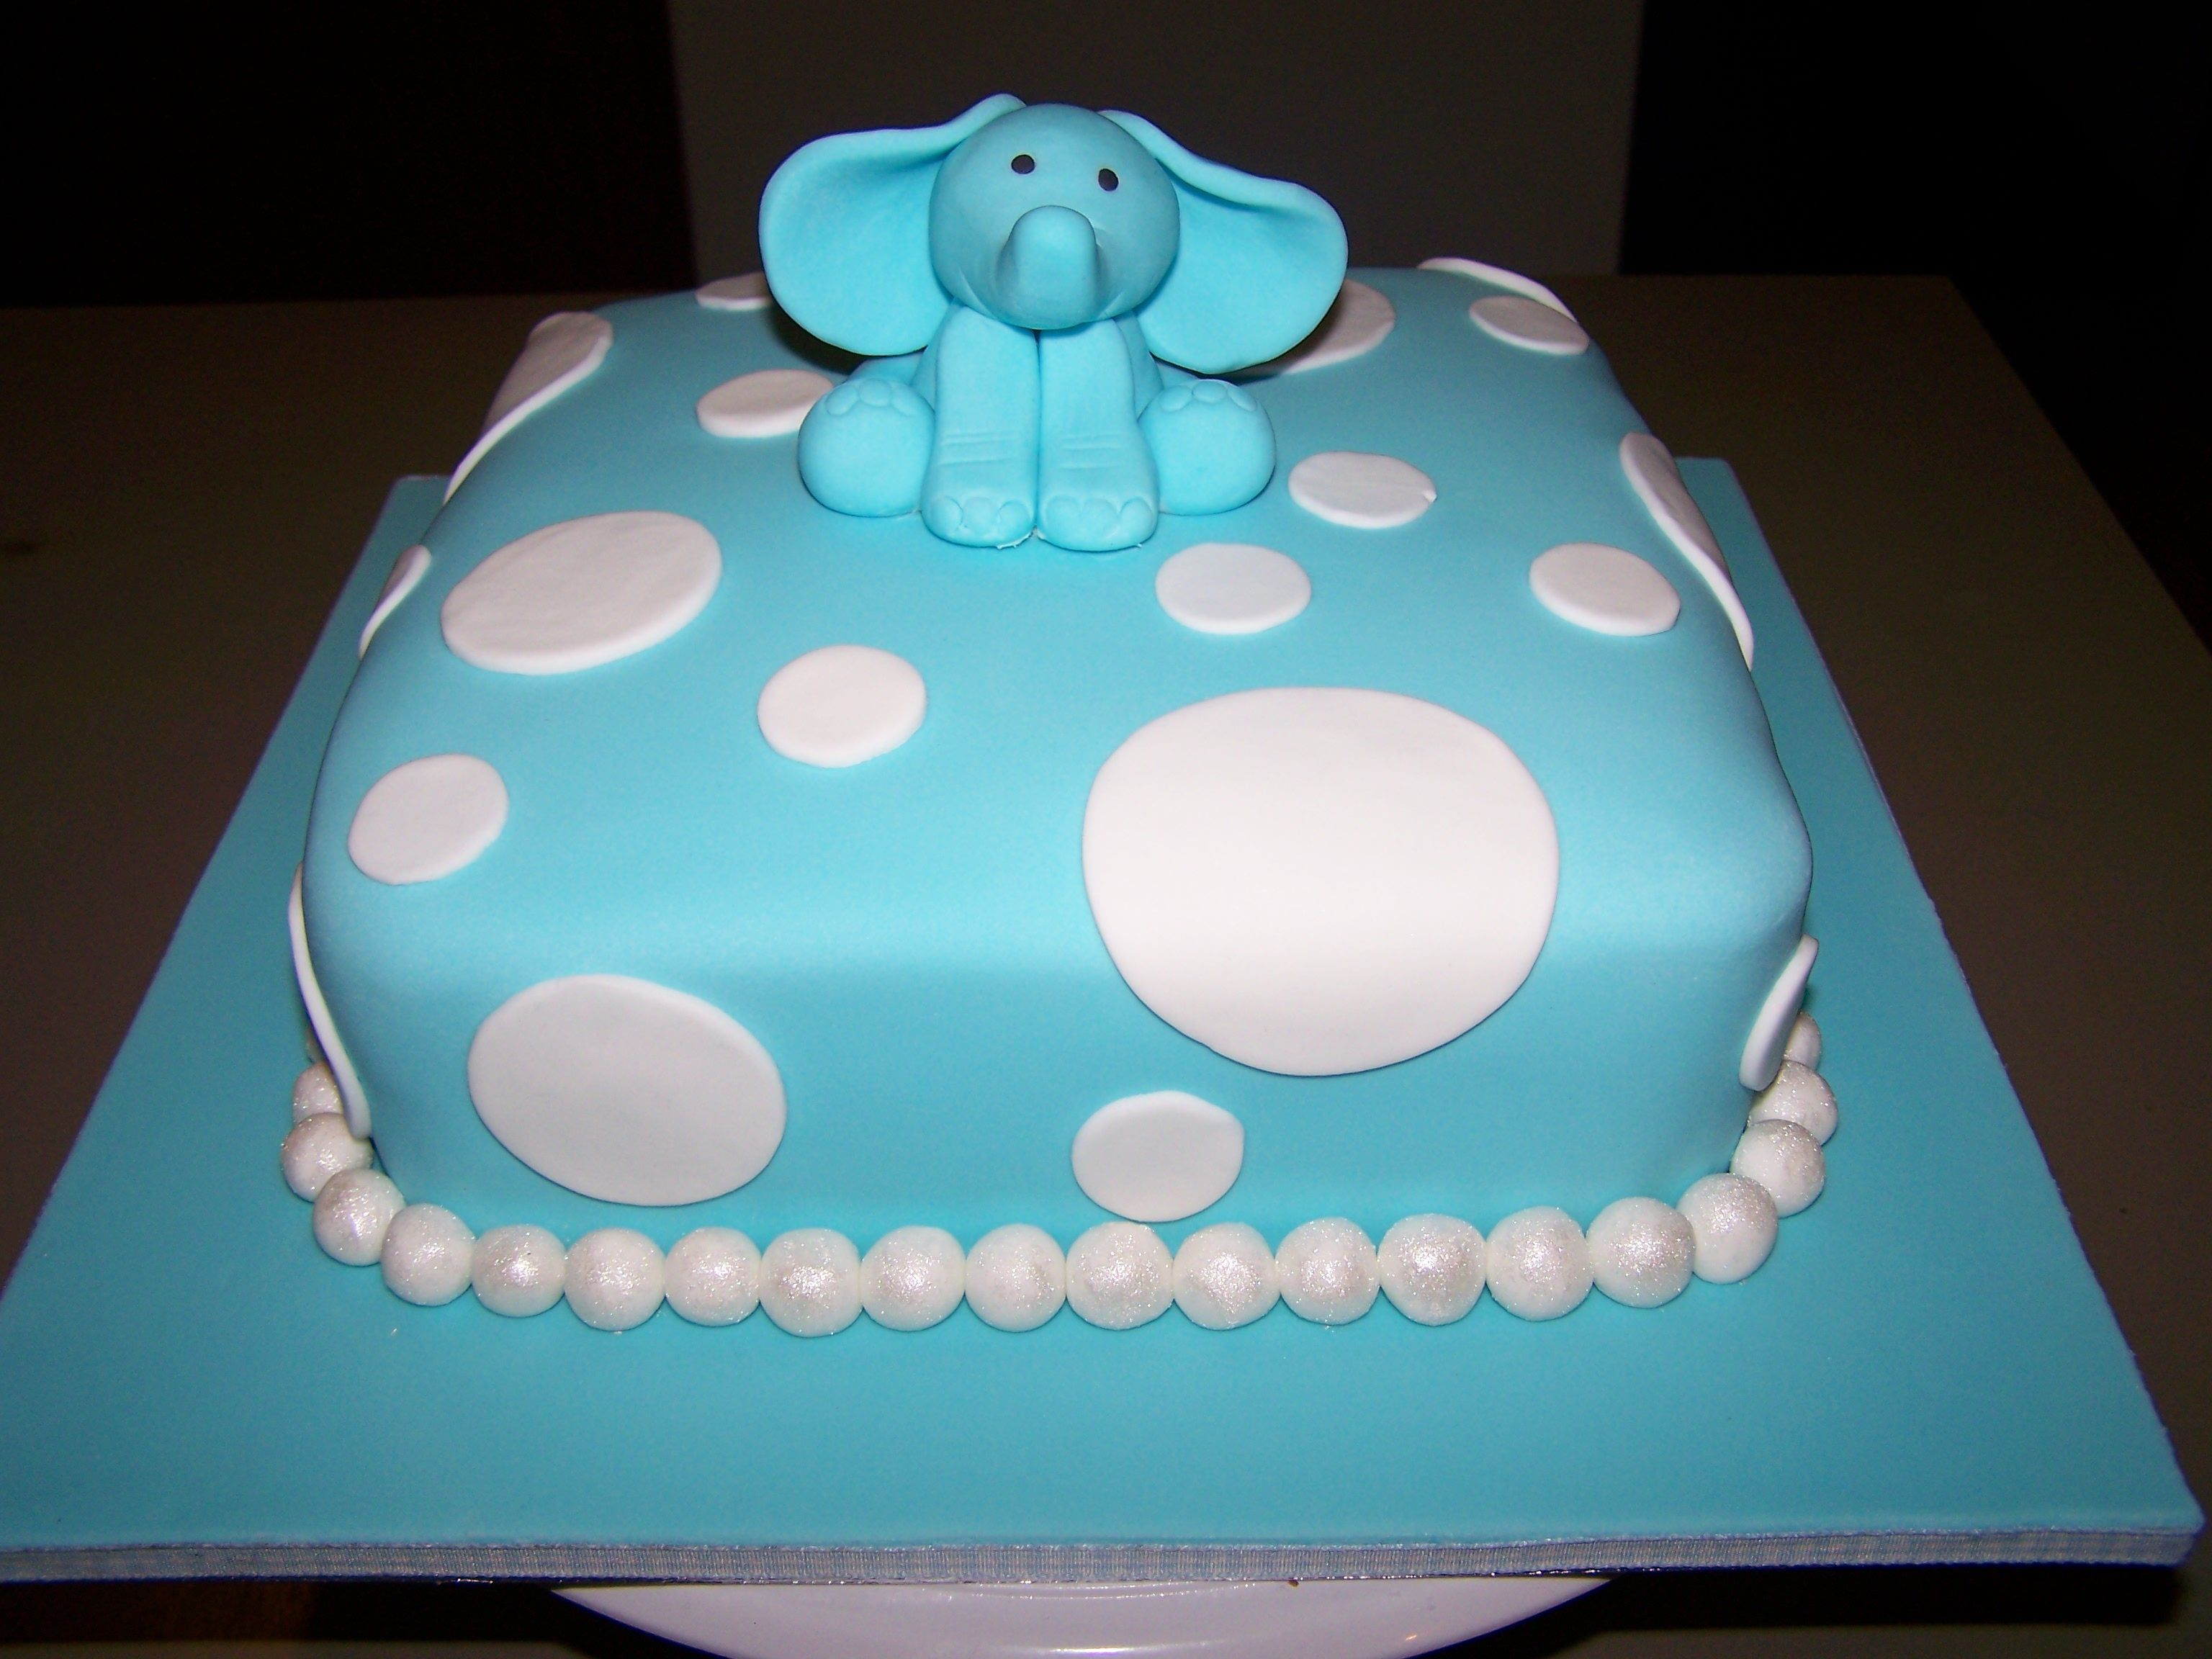 Baby Elephant Cake Decoration : Elephant baby shower cake Cake decorating ideas Pinterest